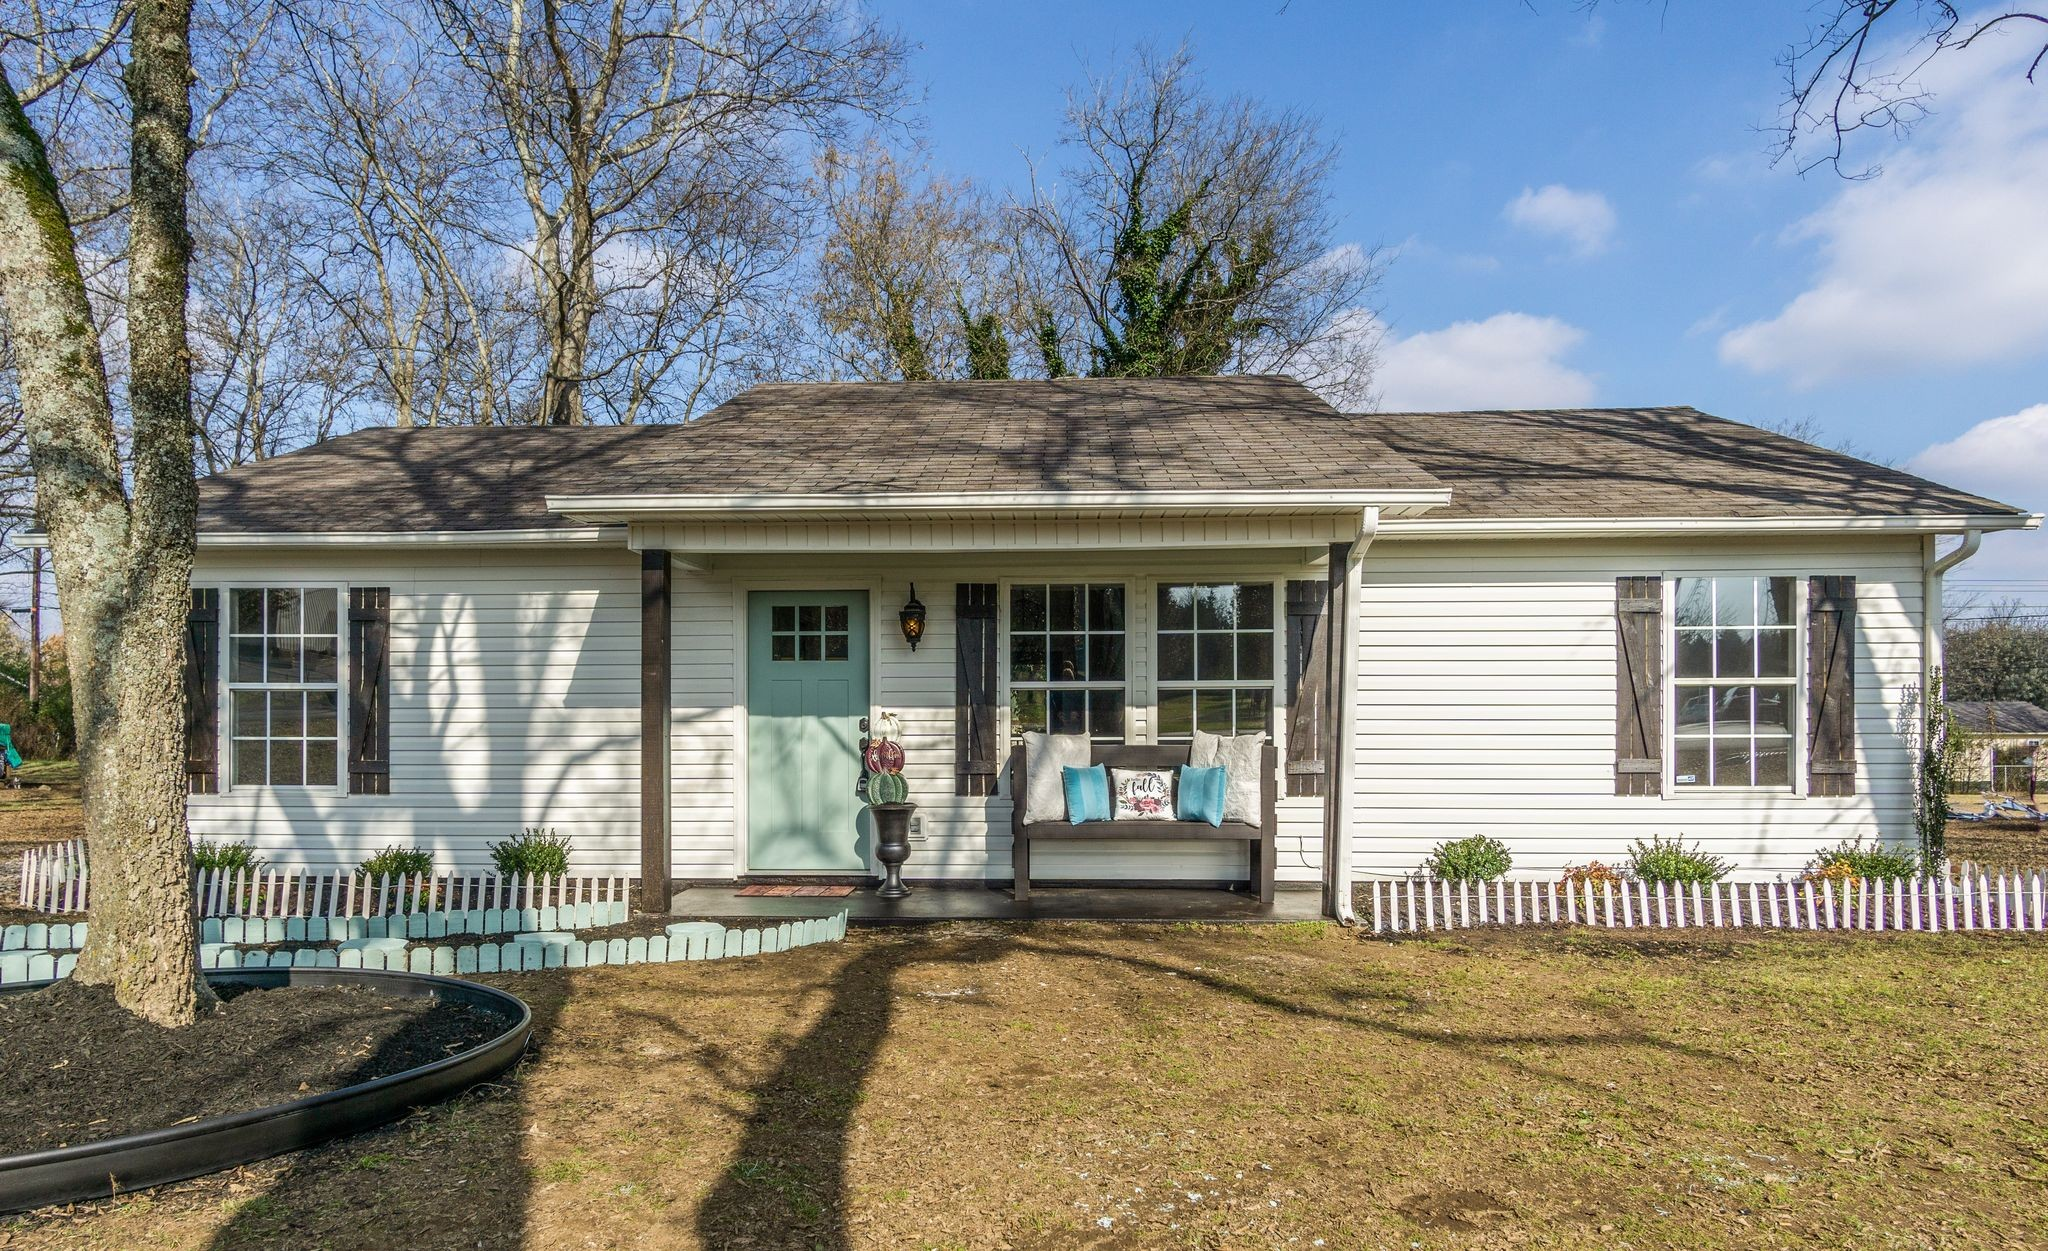 120 Clinch Dr, Columbia, TN 38401 - Columbia, TN real estate listing